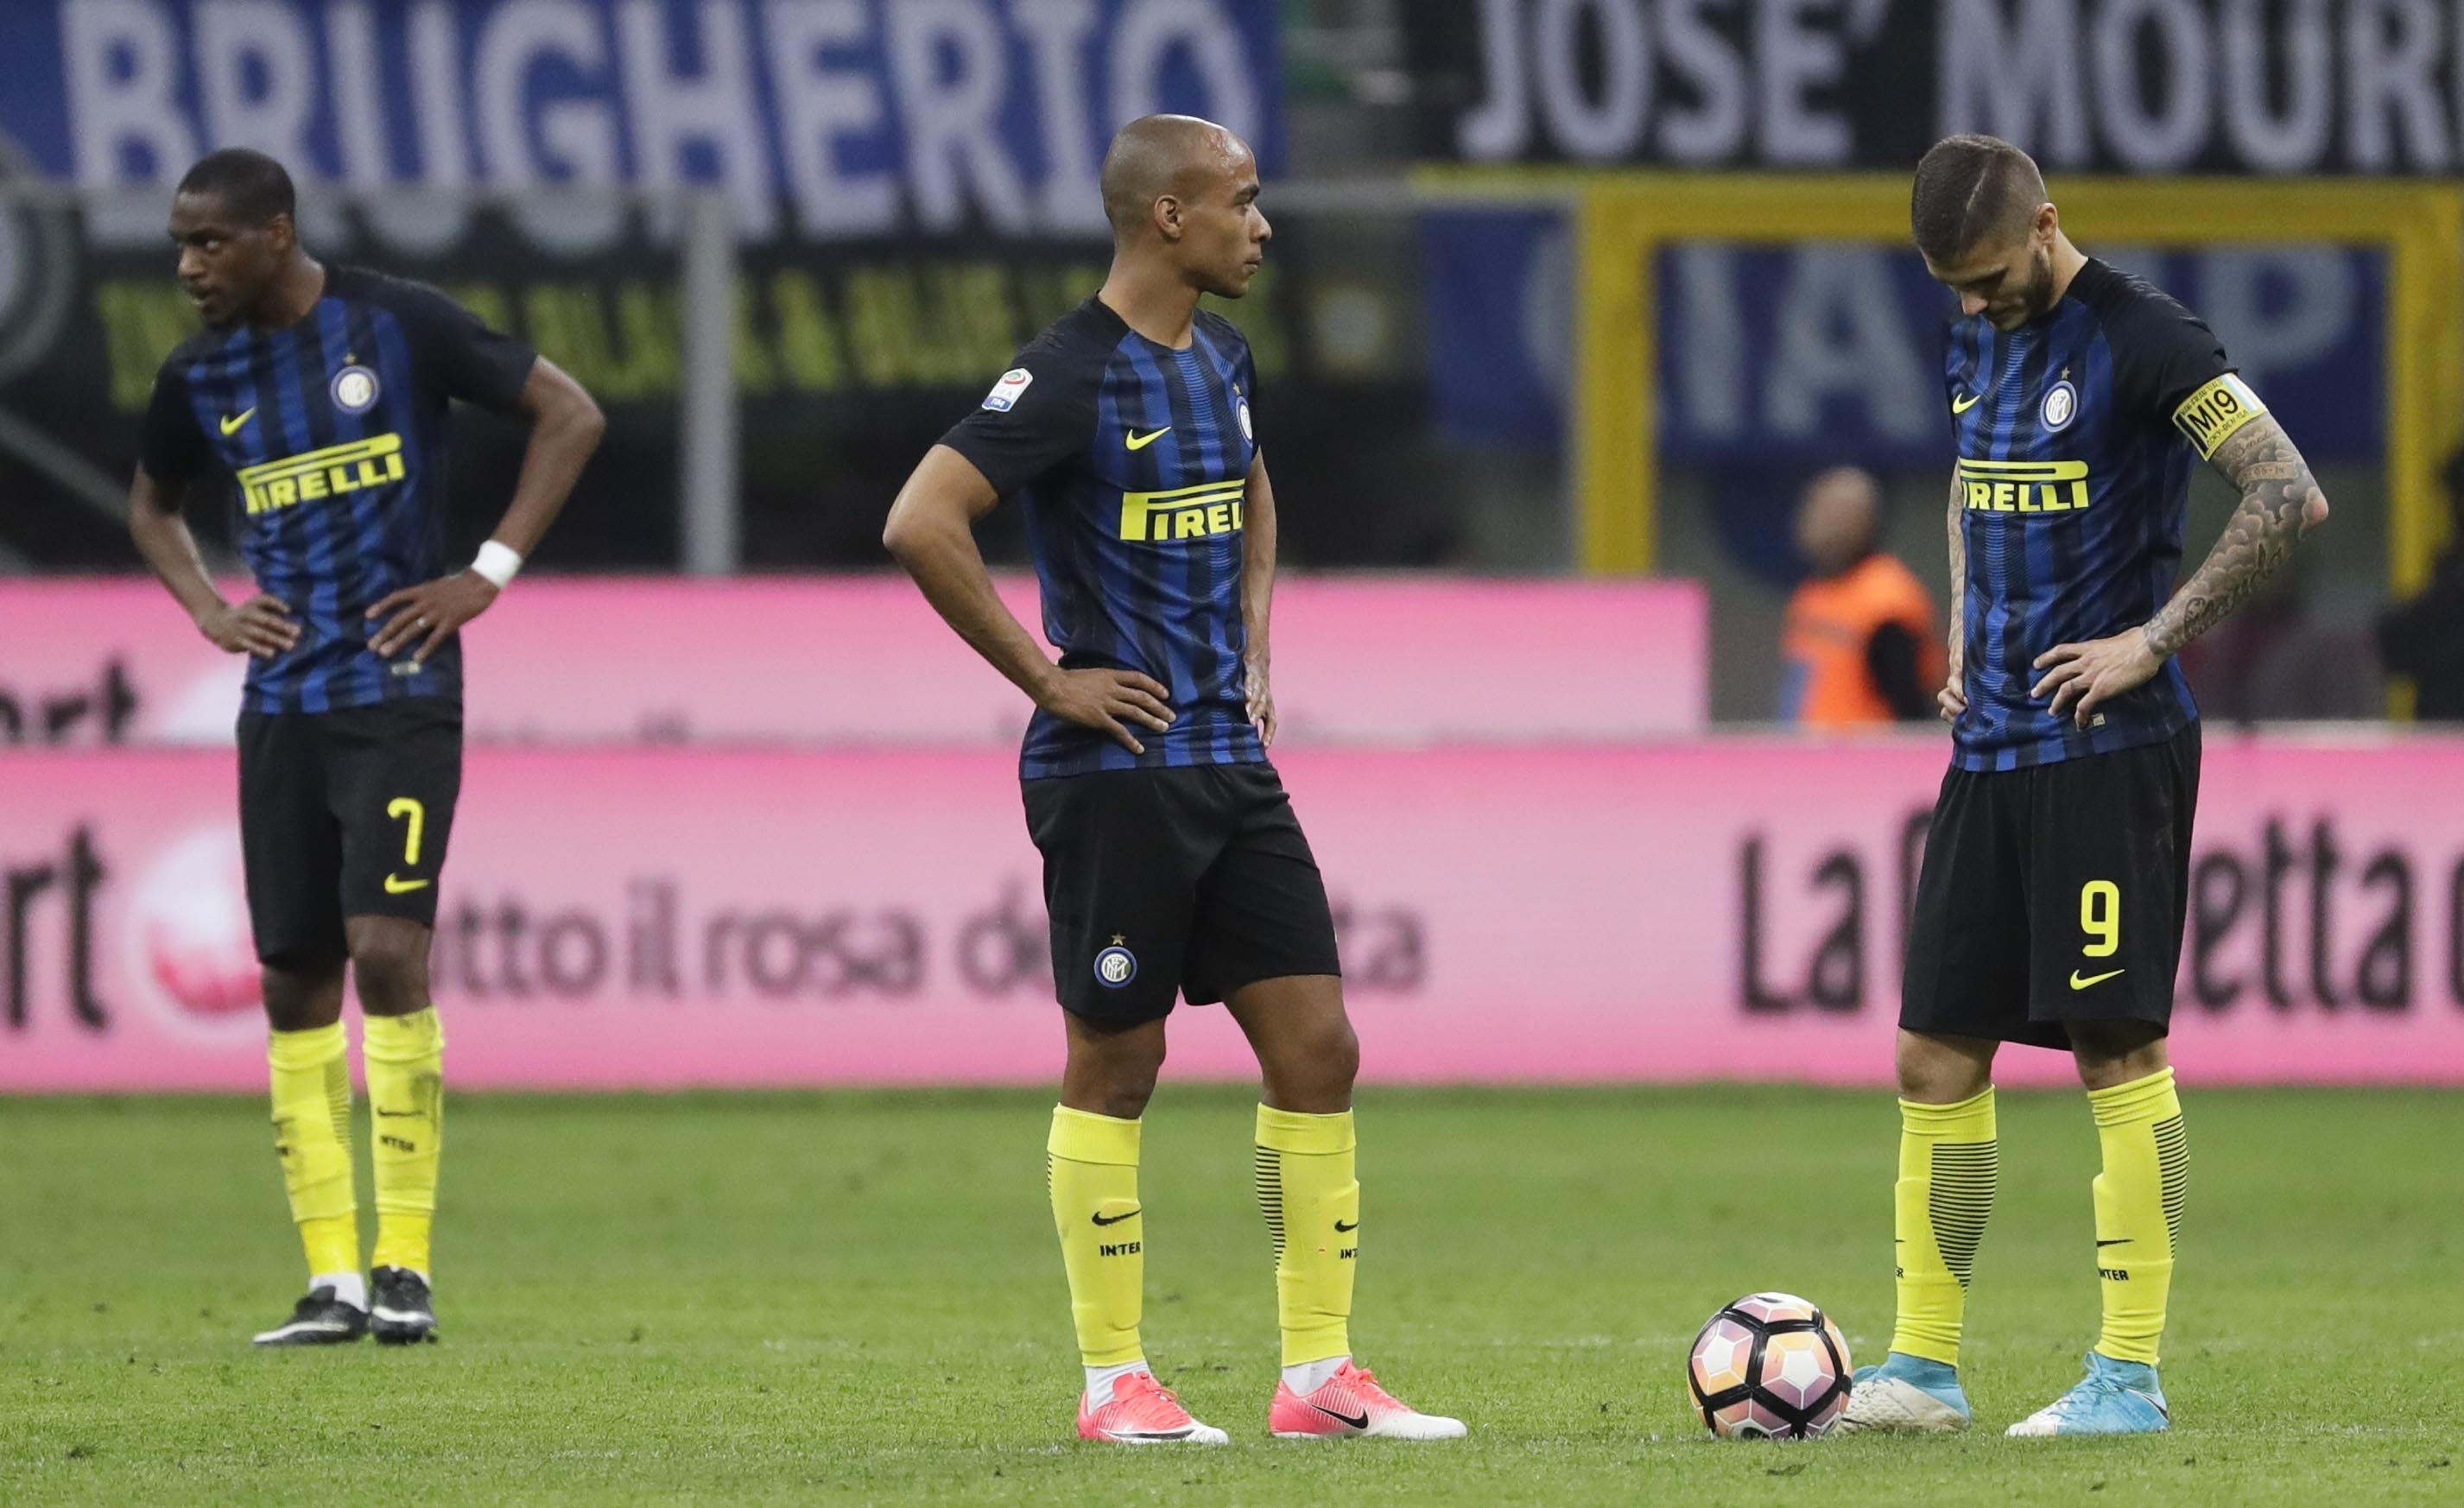 From left, Inter Milan's Geoffrey Kondogbia, Joao Miranda and Mauro Icardi react after Sampdoria's Fabio Quagliarella scored the 2-1 goal, during a Serie A soccer match between Inter Milan and Sampdoria, at the San Siro stadium in Milan, Italy, on Monday, April 3, 2017.Photo: AP